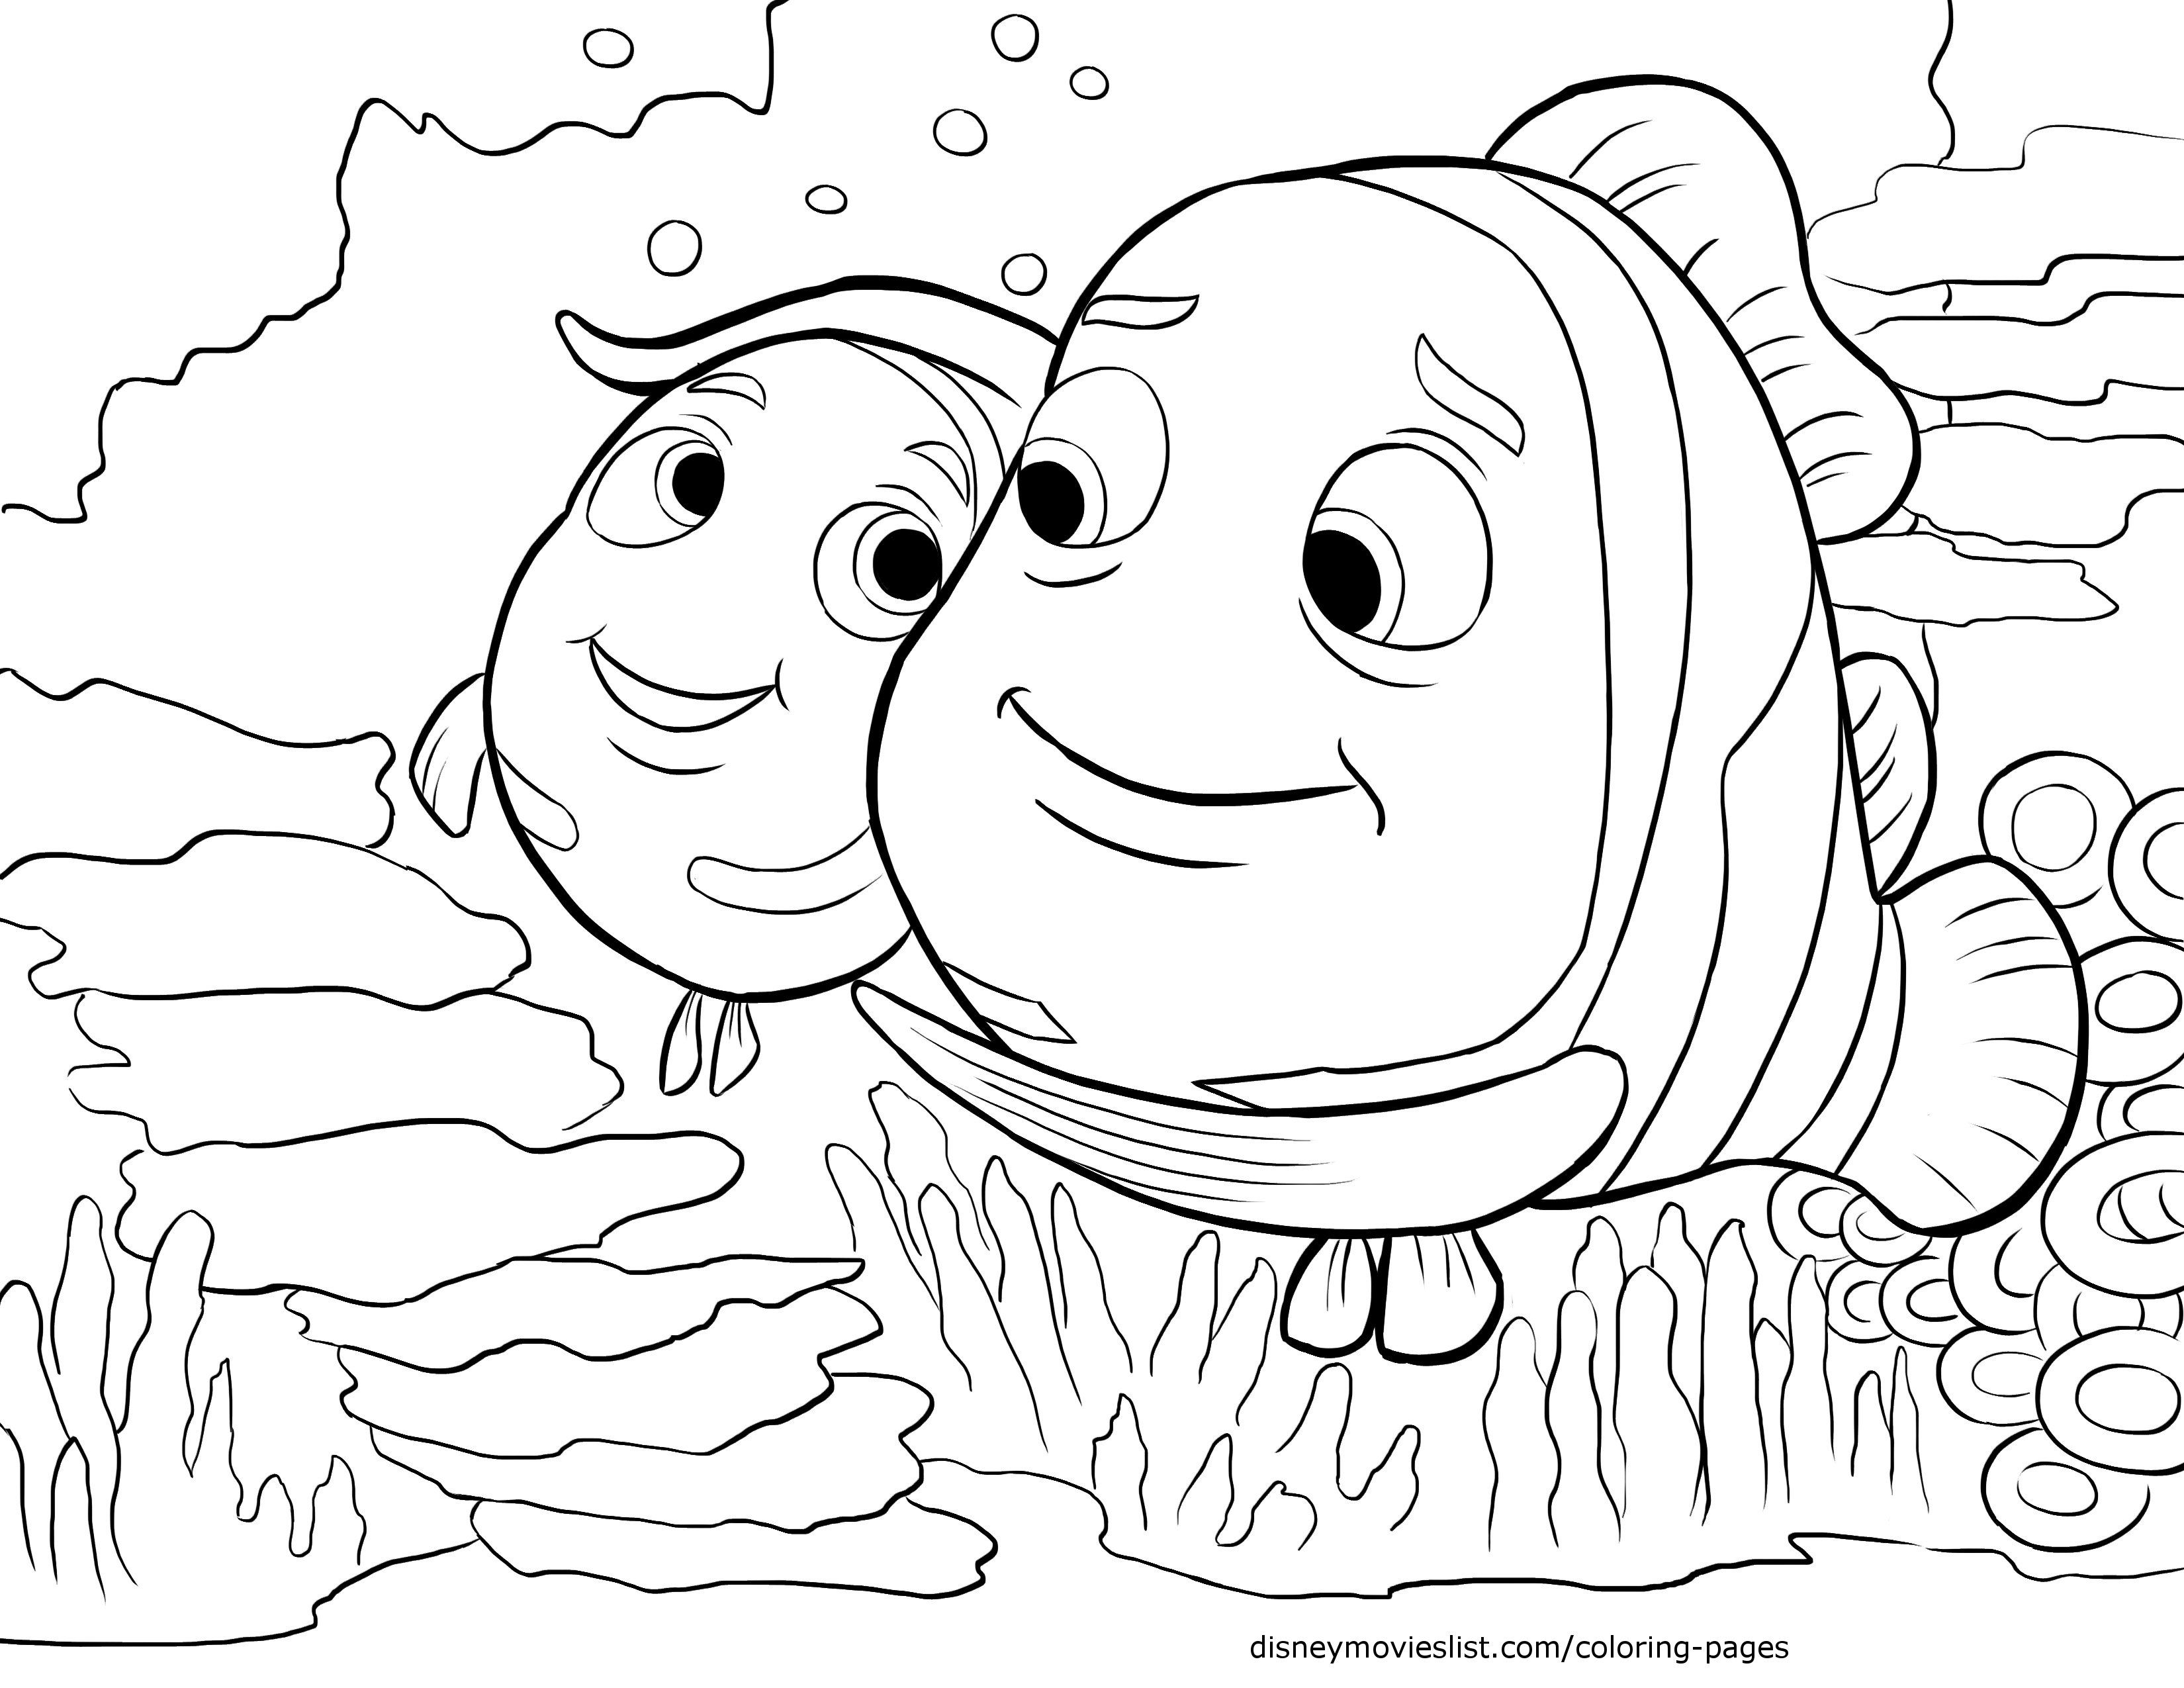 Disney S Finding Nemo Coloring Pages Sheet Free Disney Printable